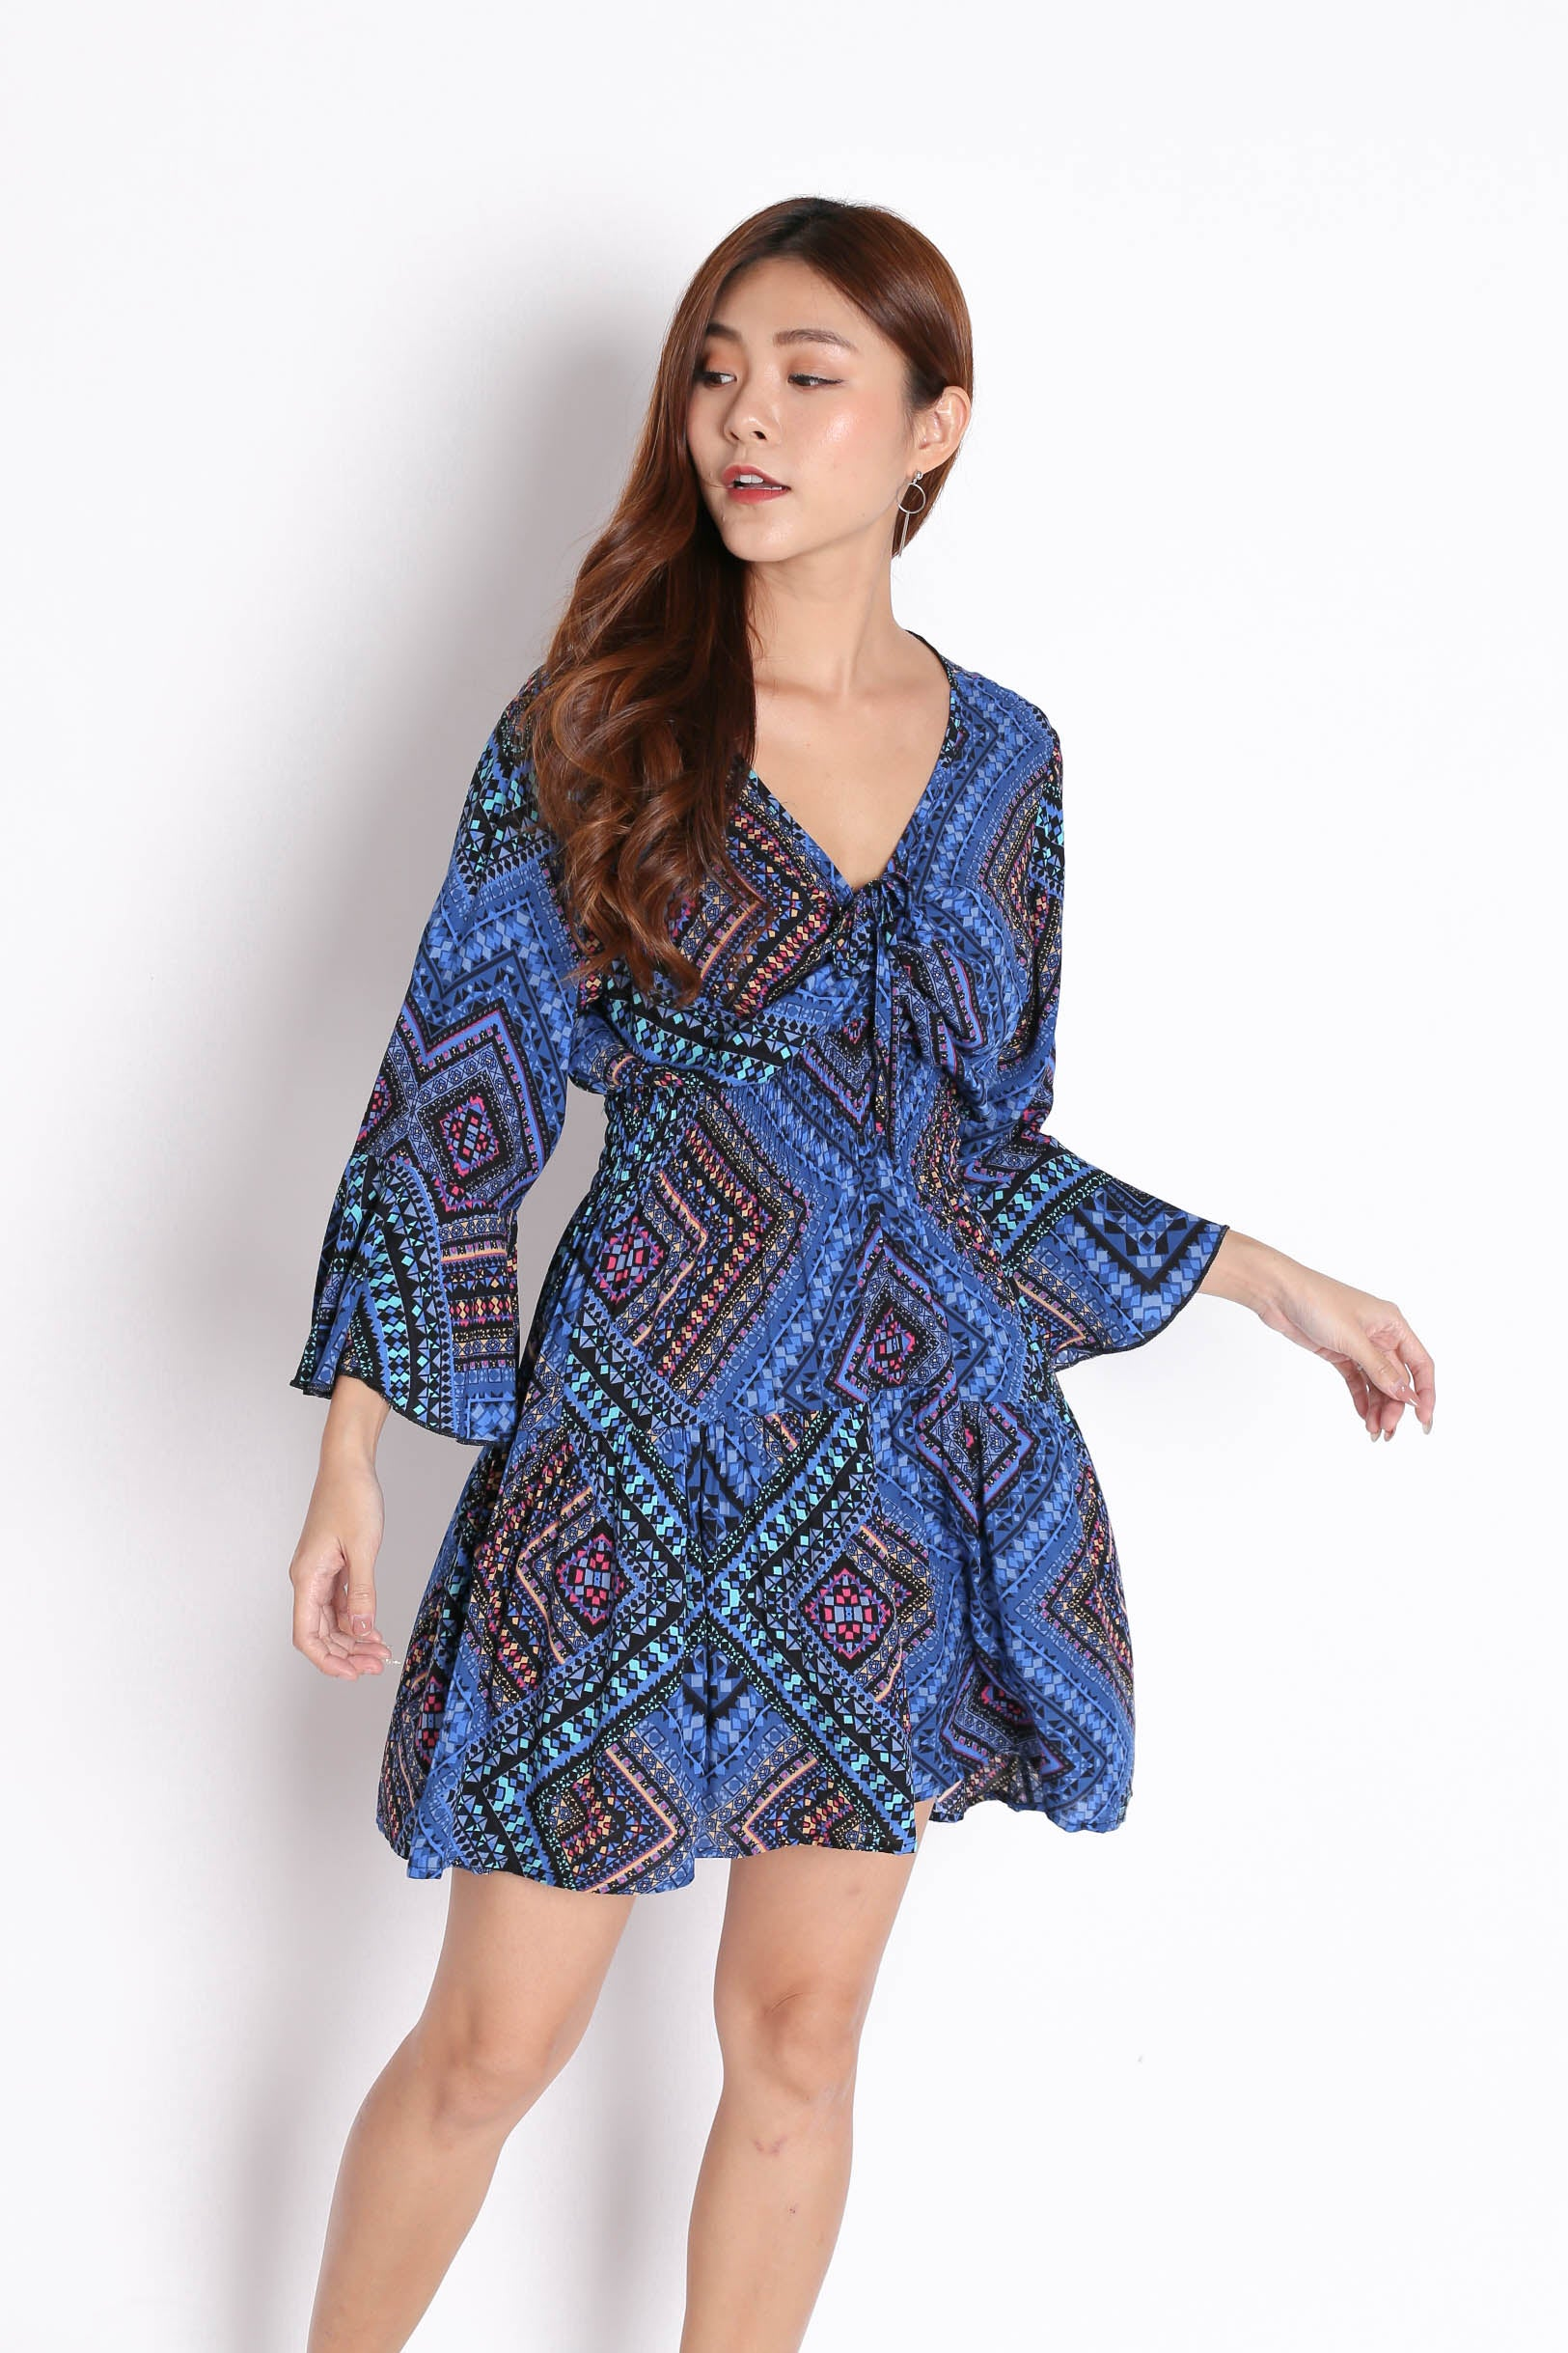 Bali Batik Dress V3 In Cool